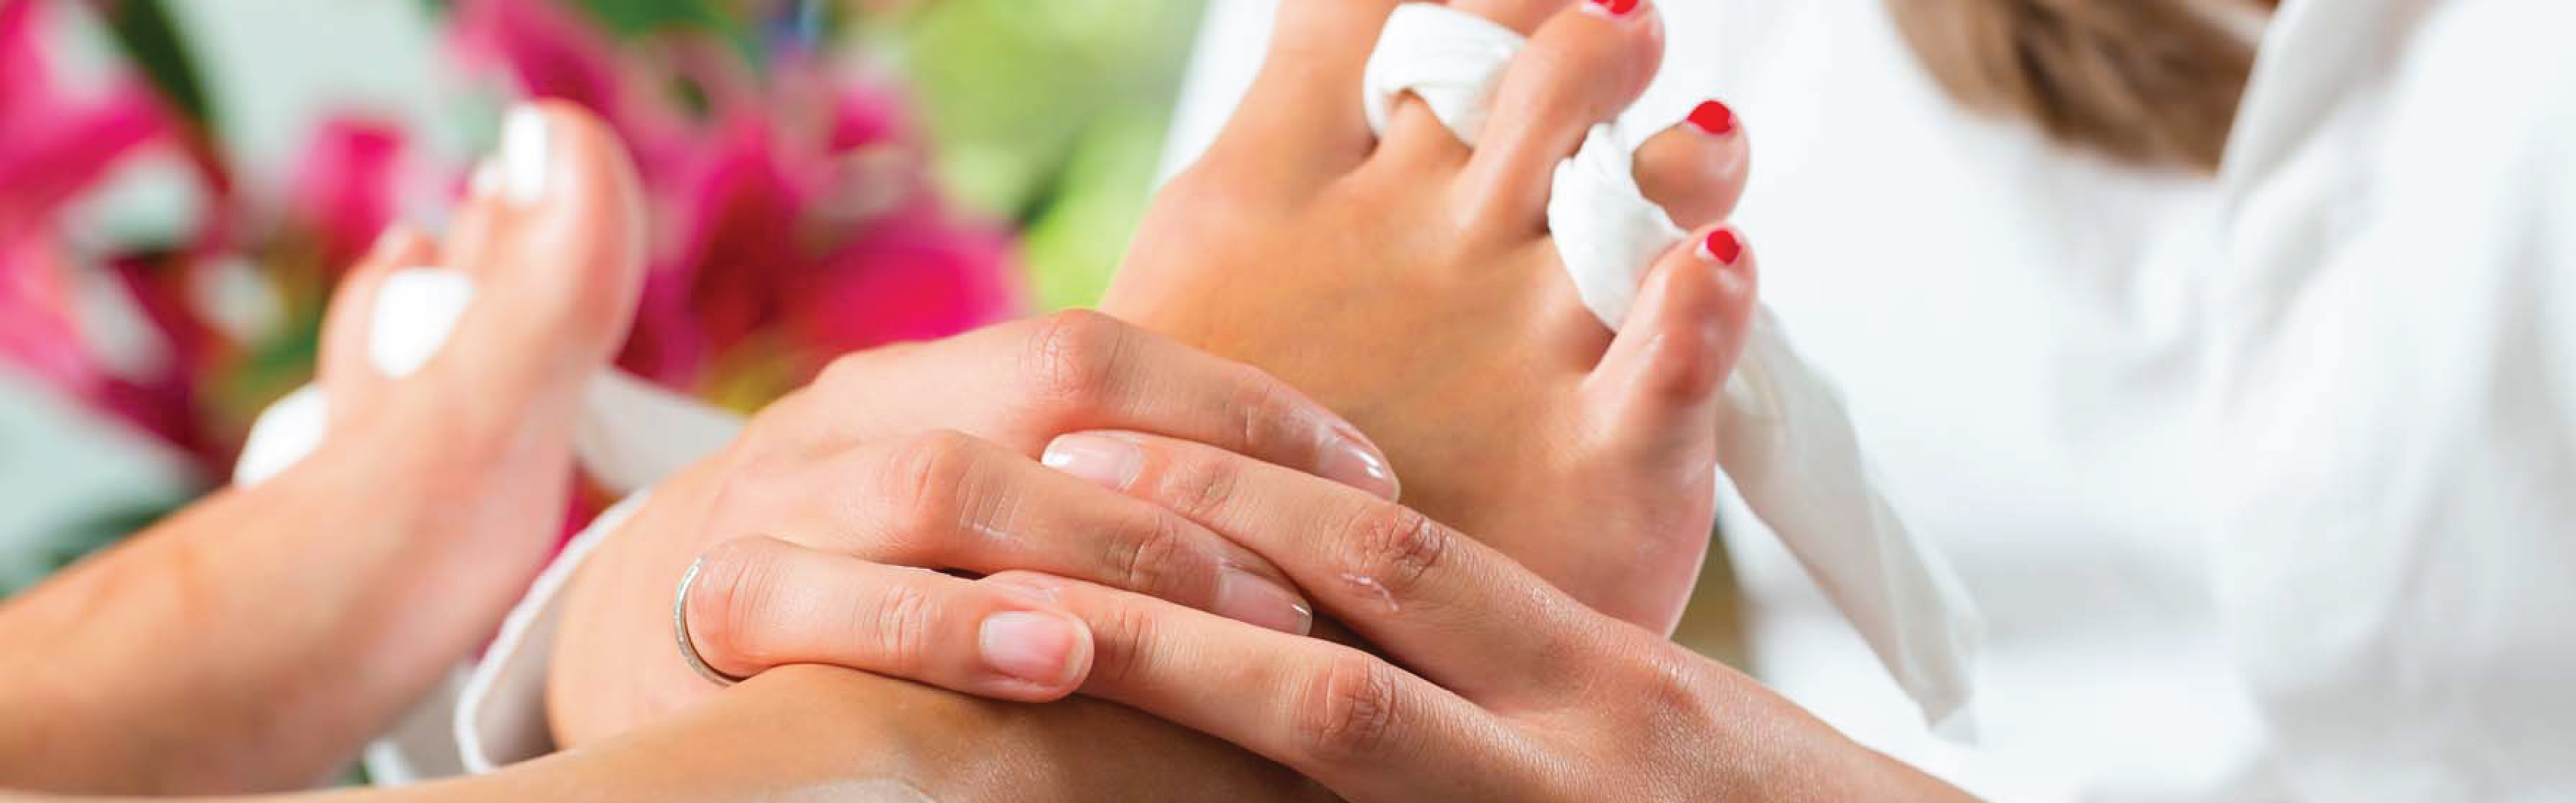 MADICURE -PEDICURE on NATURAL NAIL :: FaceLine